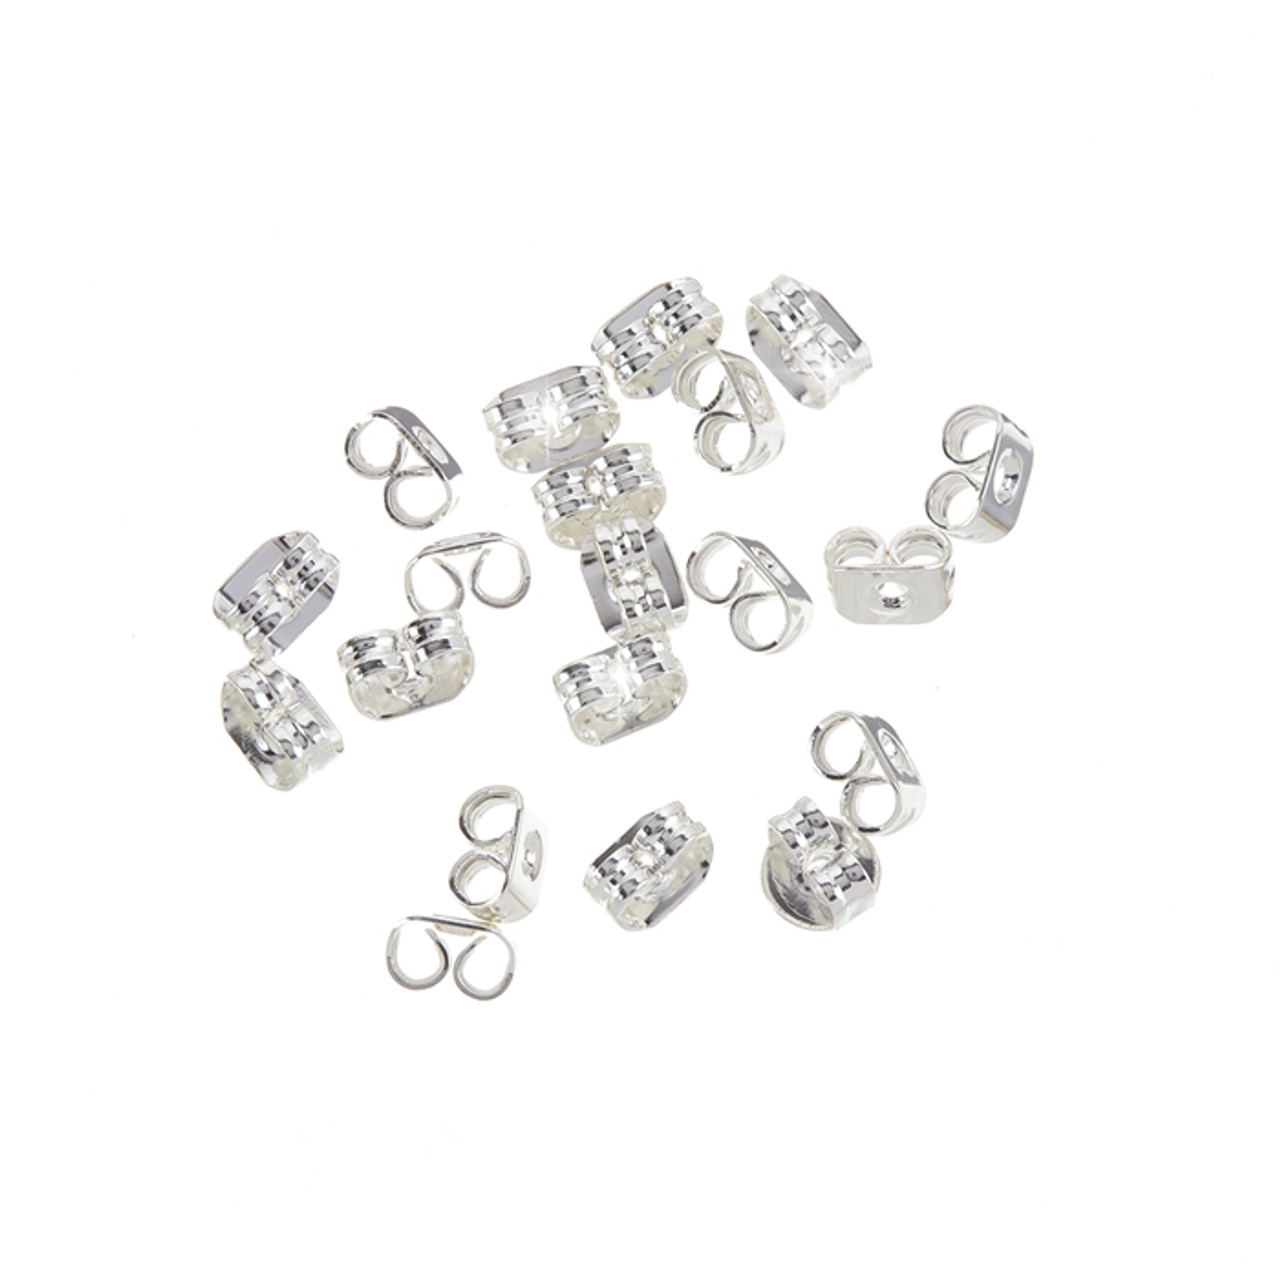 Silver Earring Backs EF233a Silver Plated Butterfly Style 6x4mm 10-100 500-1000 Pieces Ships IMMEDIATELY from California